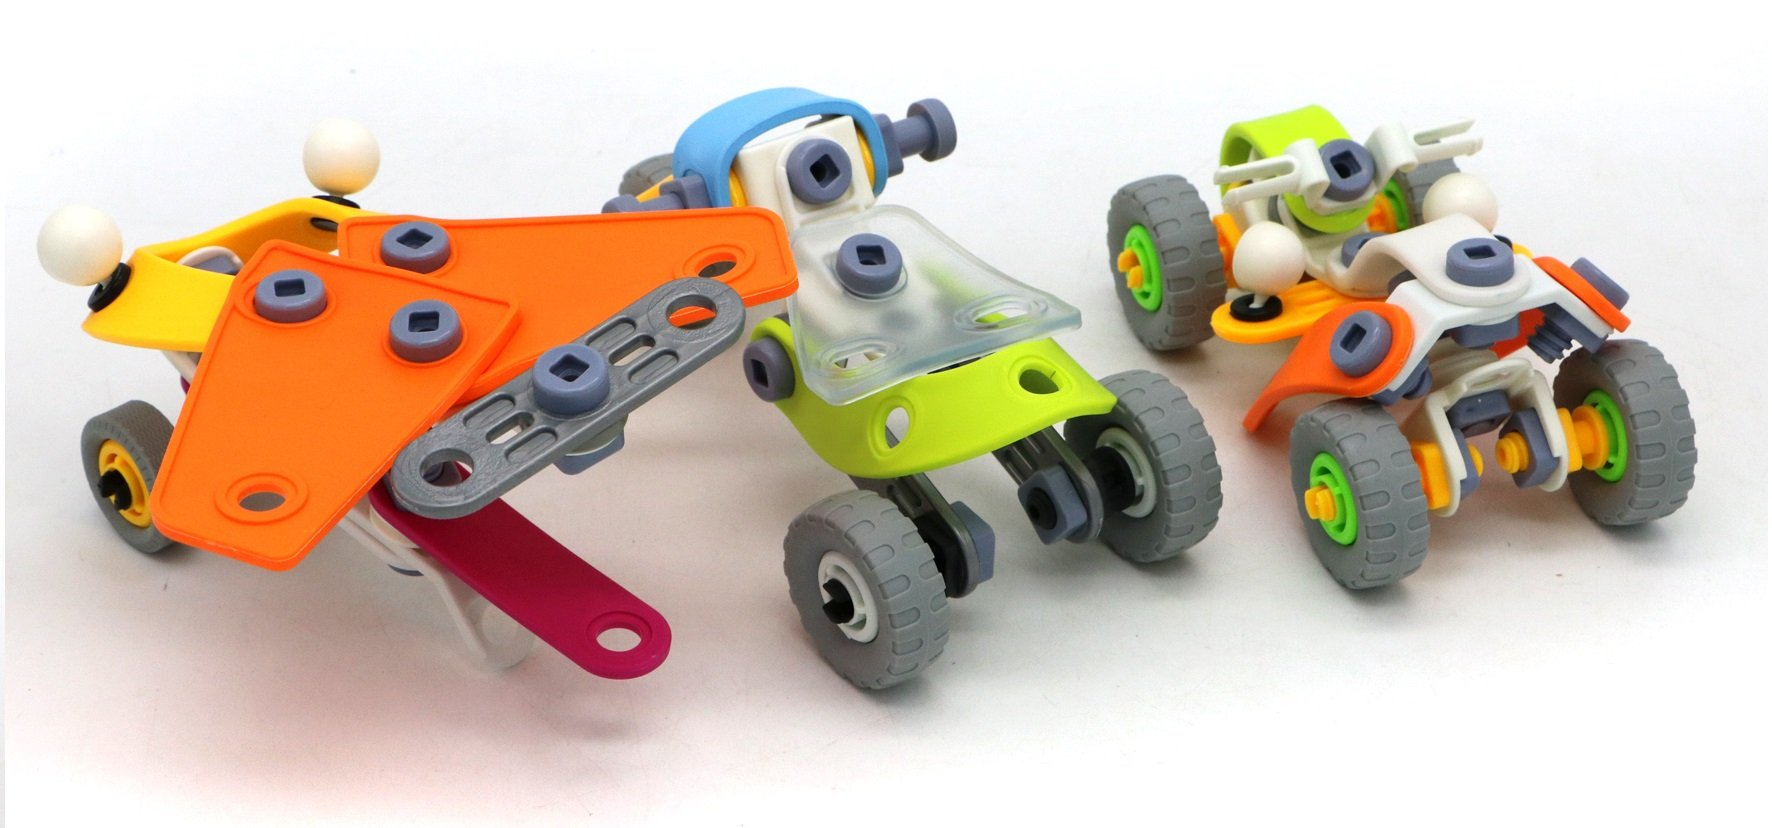 3 Designs in One Package from Verzabo with 163 Pieces Allows Kids to Pick And Choose What They Build Between a Helicopter Glider, Dune Buggy and 3 Wheel Motorcycle